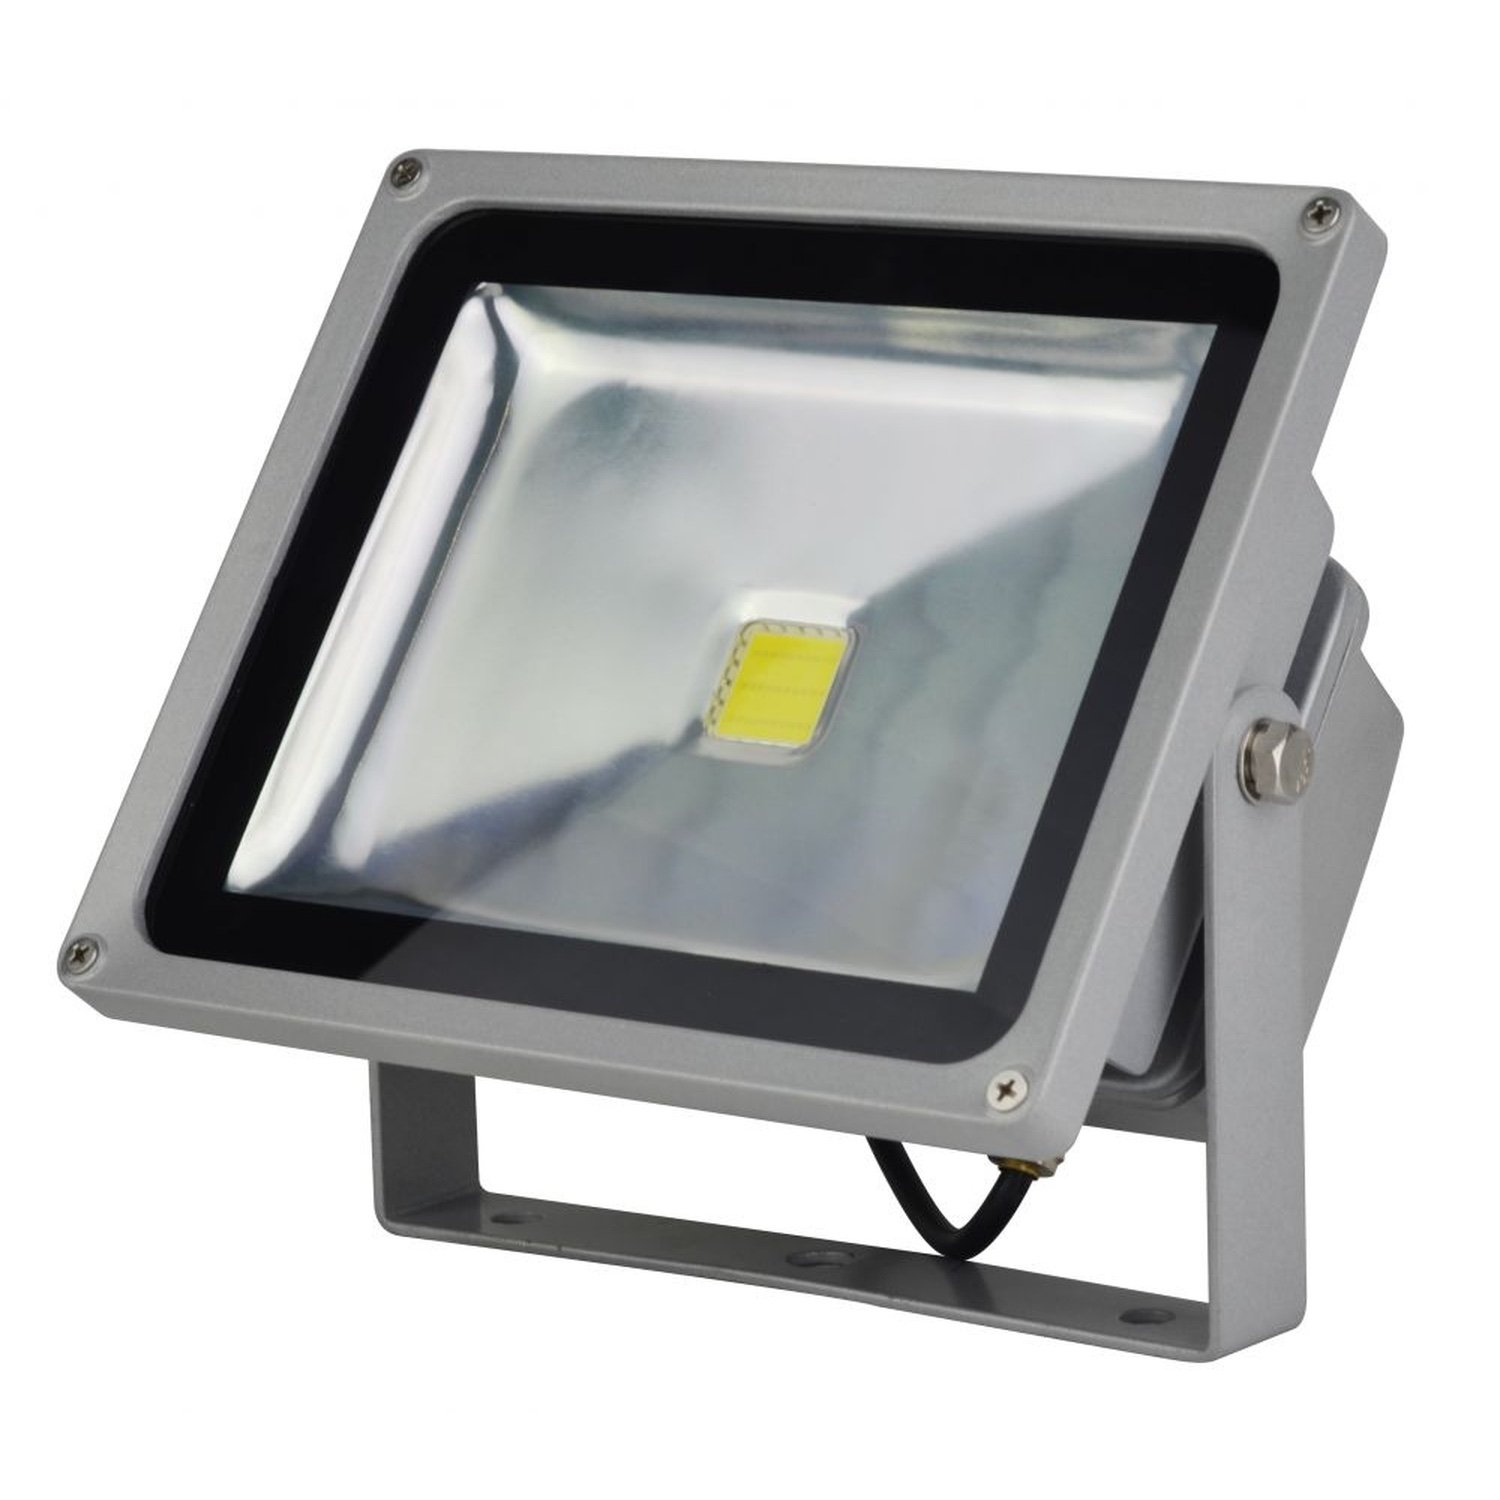 LED Spotlight Spotlight 30W 6500K Bright Light